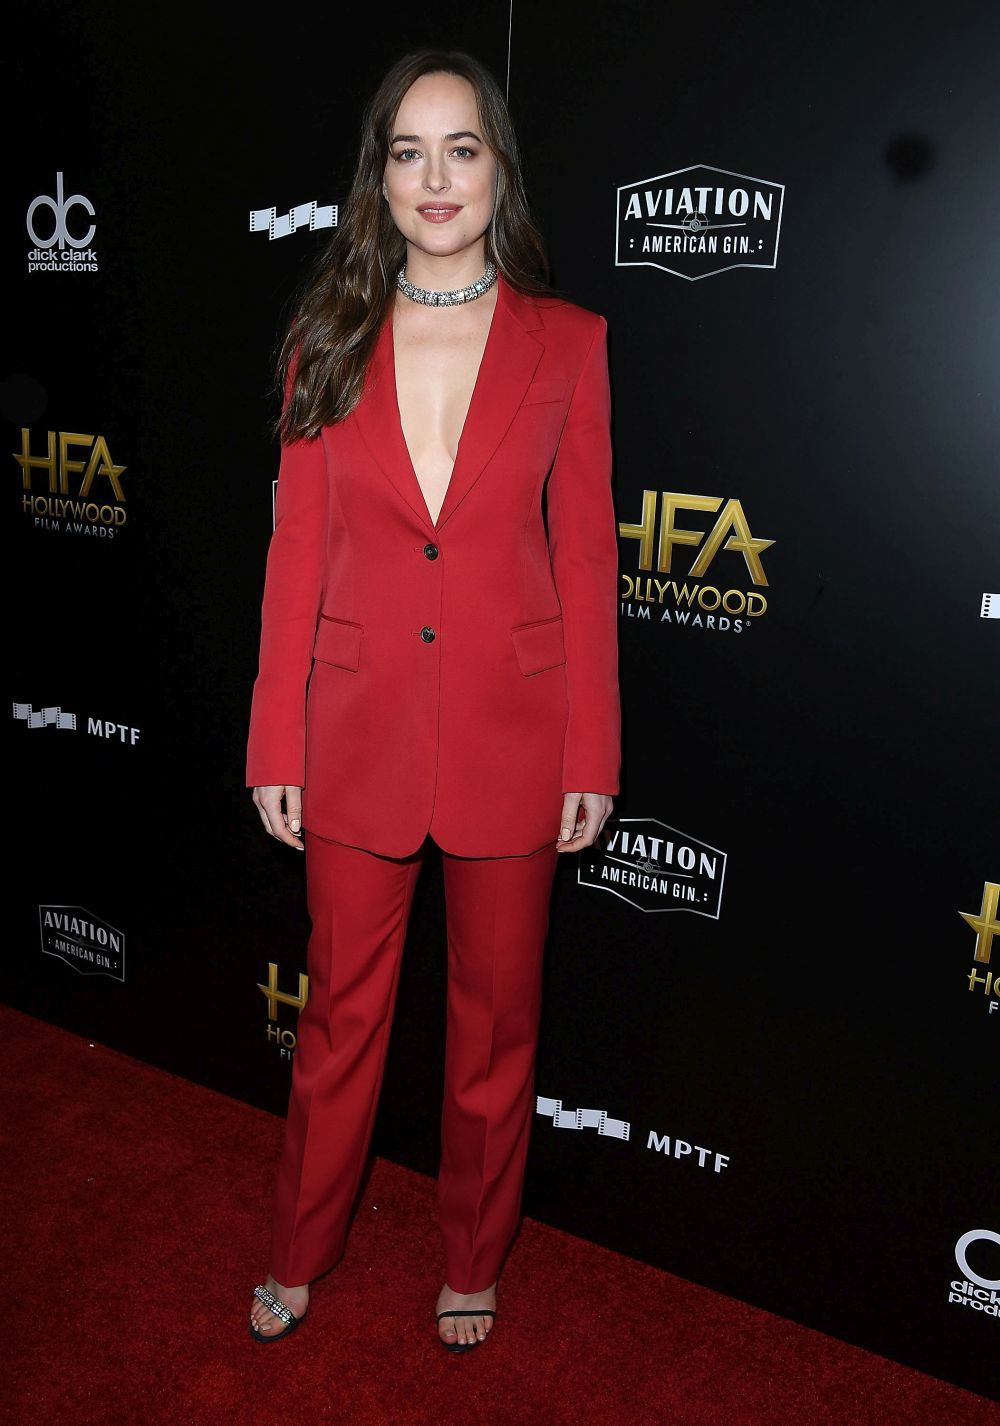 Dakota Johnson con un esmoquin rojo.